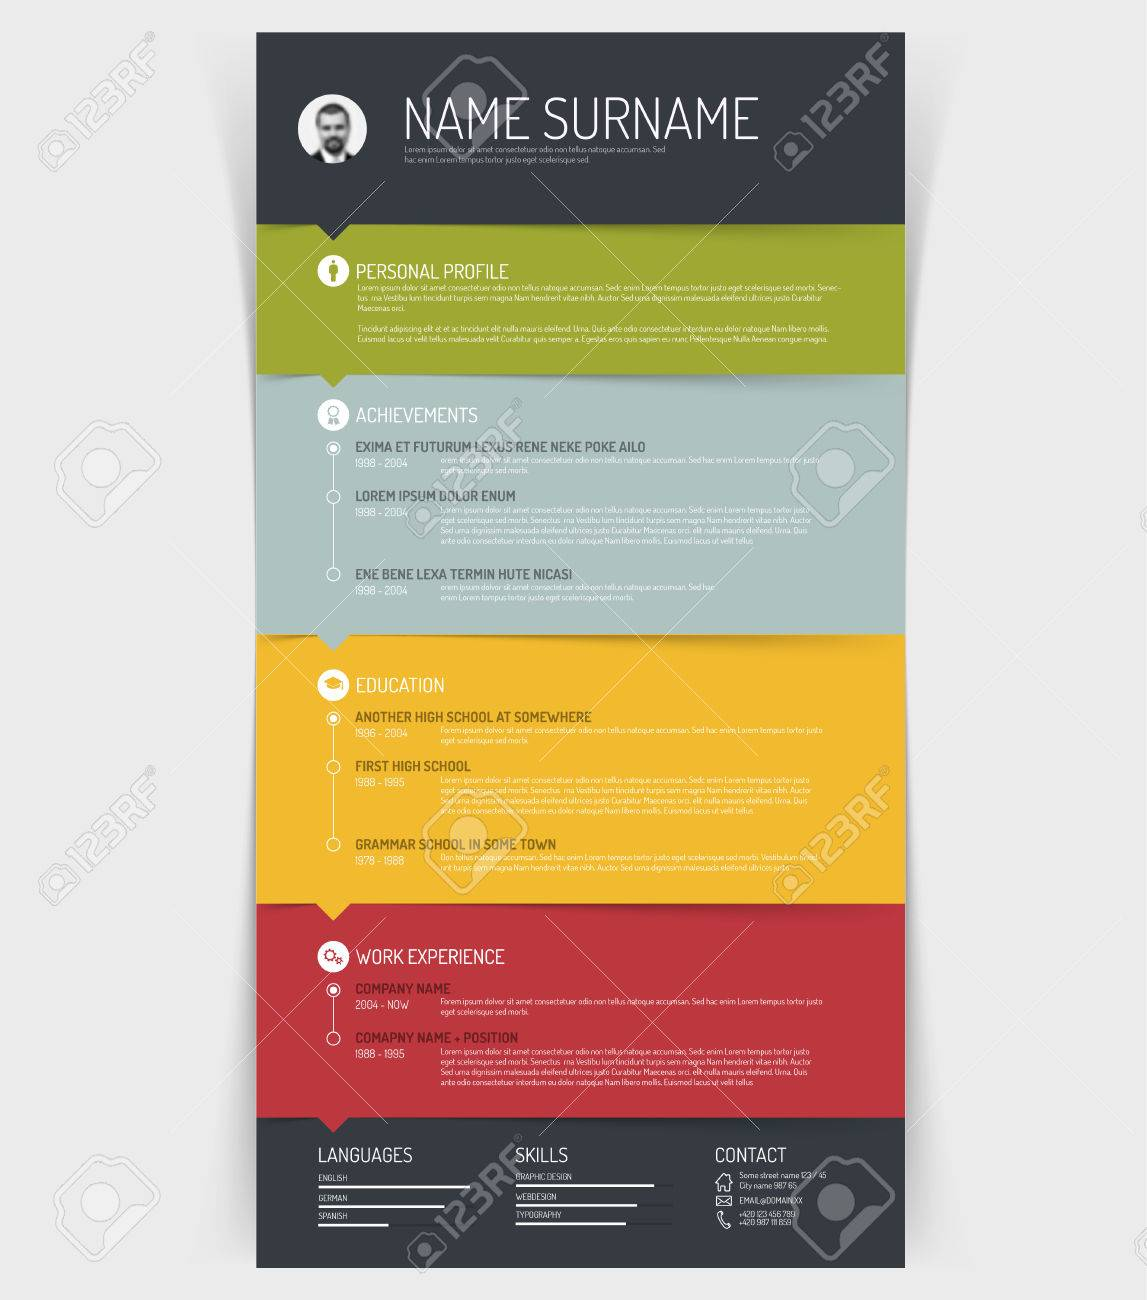 Vector Minimalist Cv Resume Template With Colorful Sections